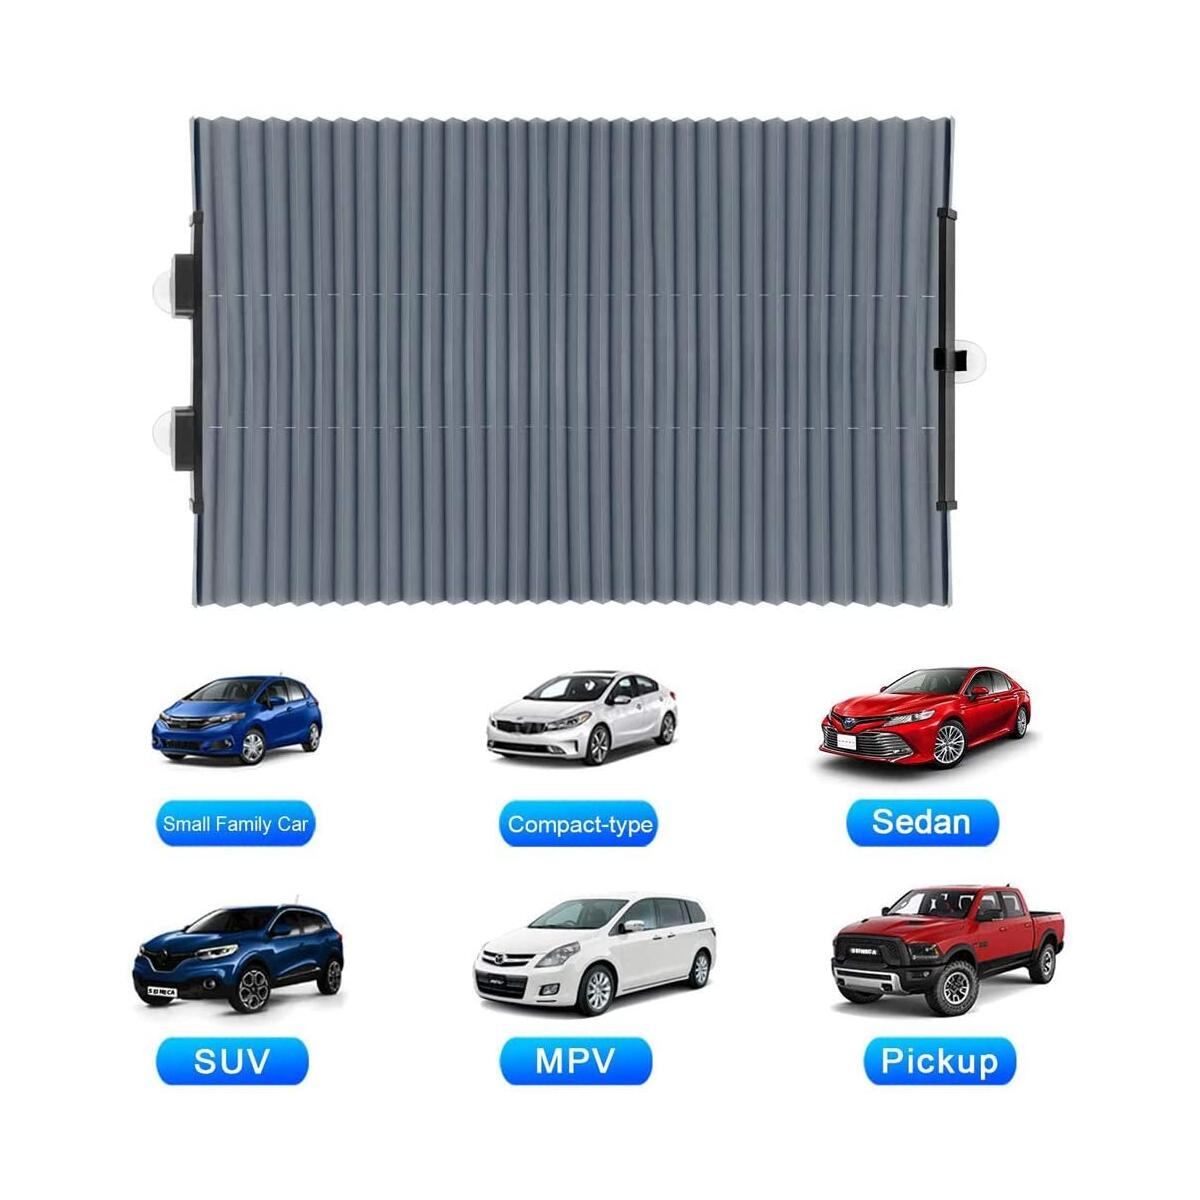 Car Windshield Shades for Front Window,Retractable Automotive Sunshades Car Heat Sun UV Protector Cover for Keep Your Vehicle Cool,Fits Various Car Windshields Sizes